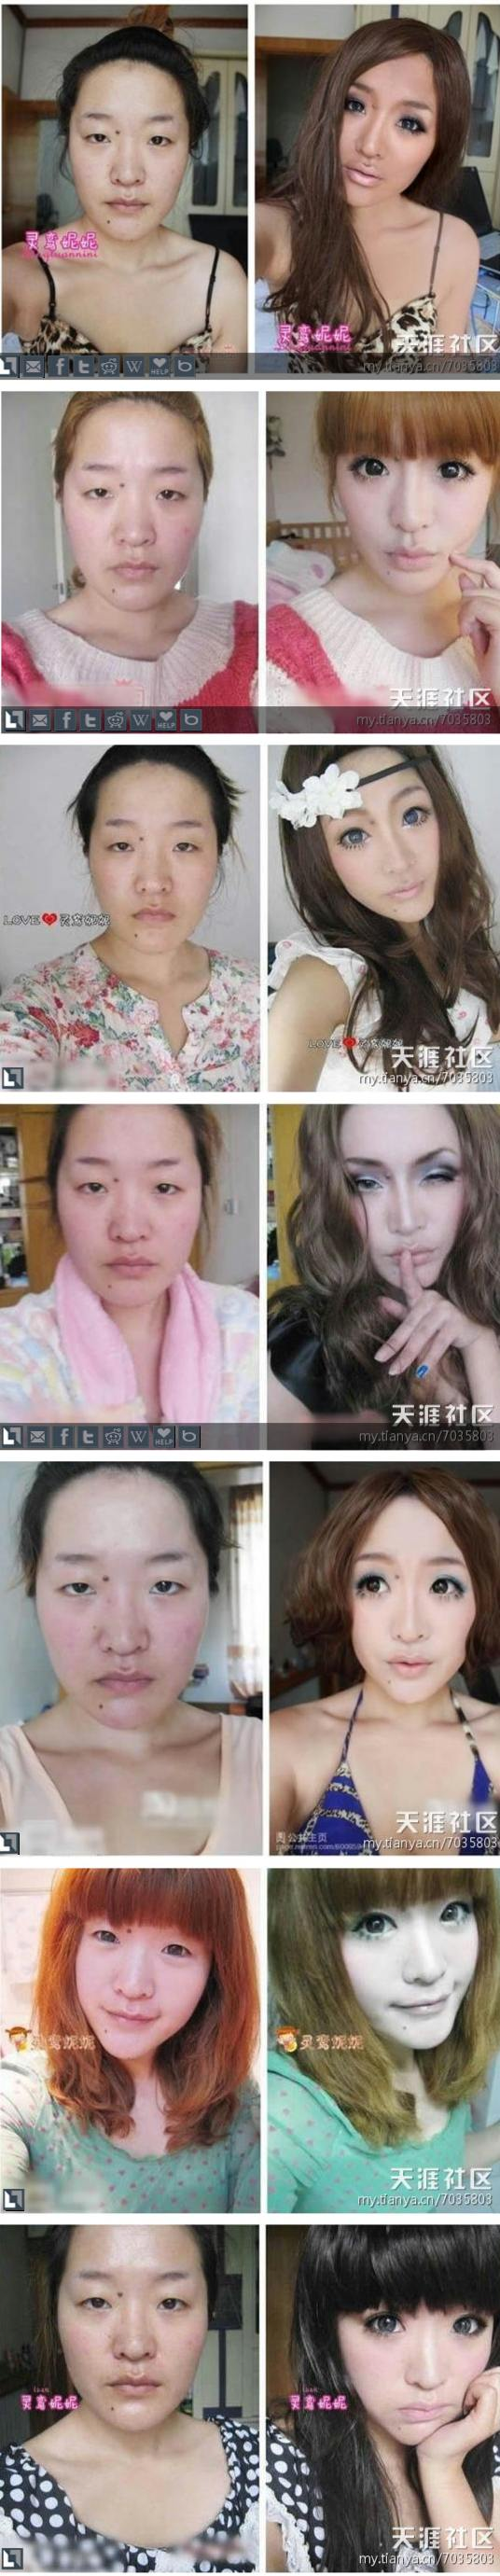 chinese-girl-after-makeup-different-faces.jpeg